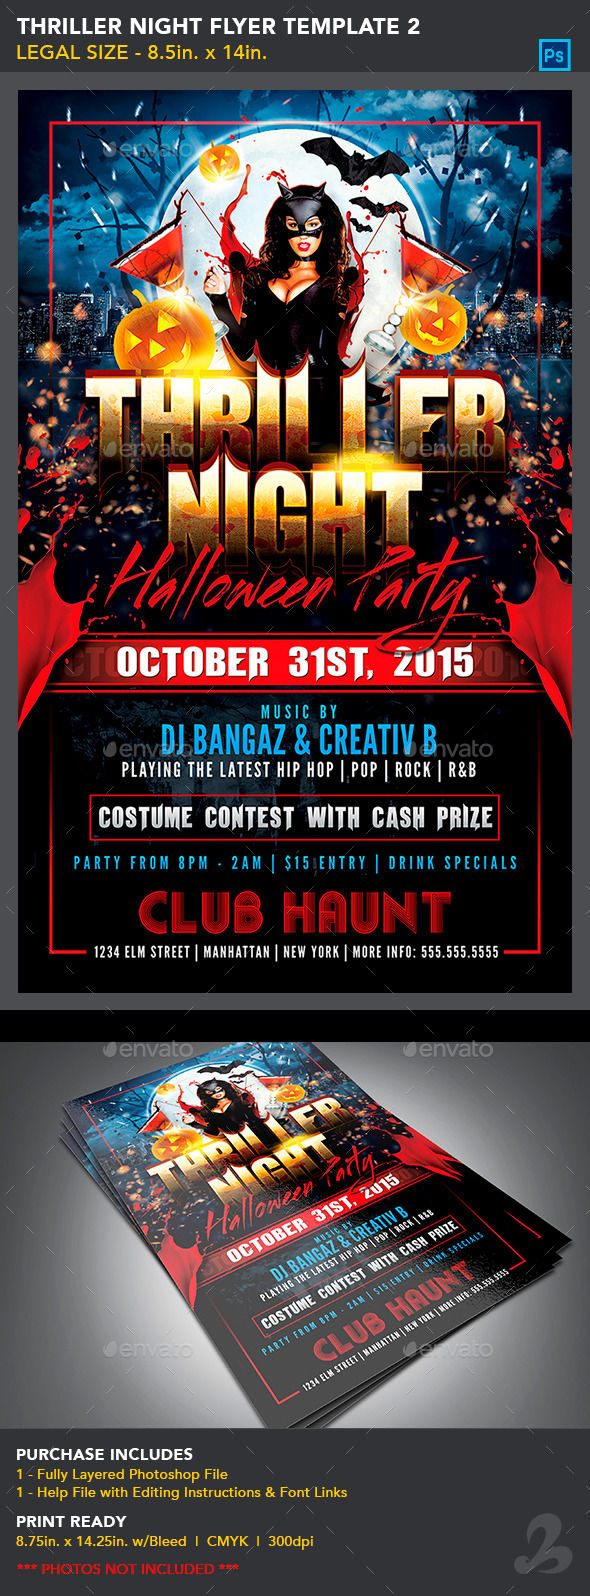 Thriller Night Halloween Flyer Template by CreativB (Halloween party flyer)